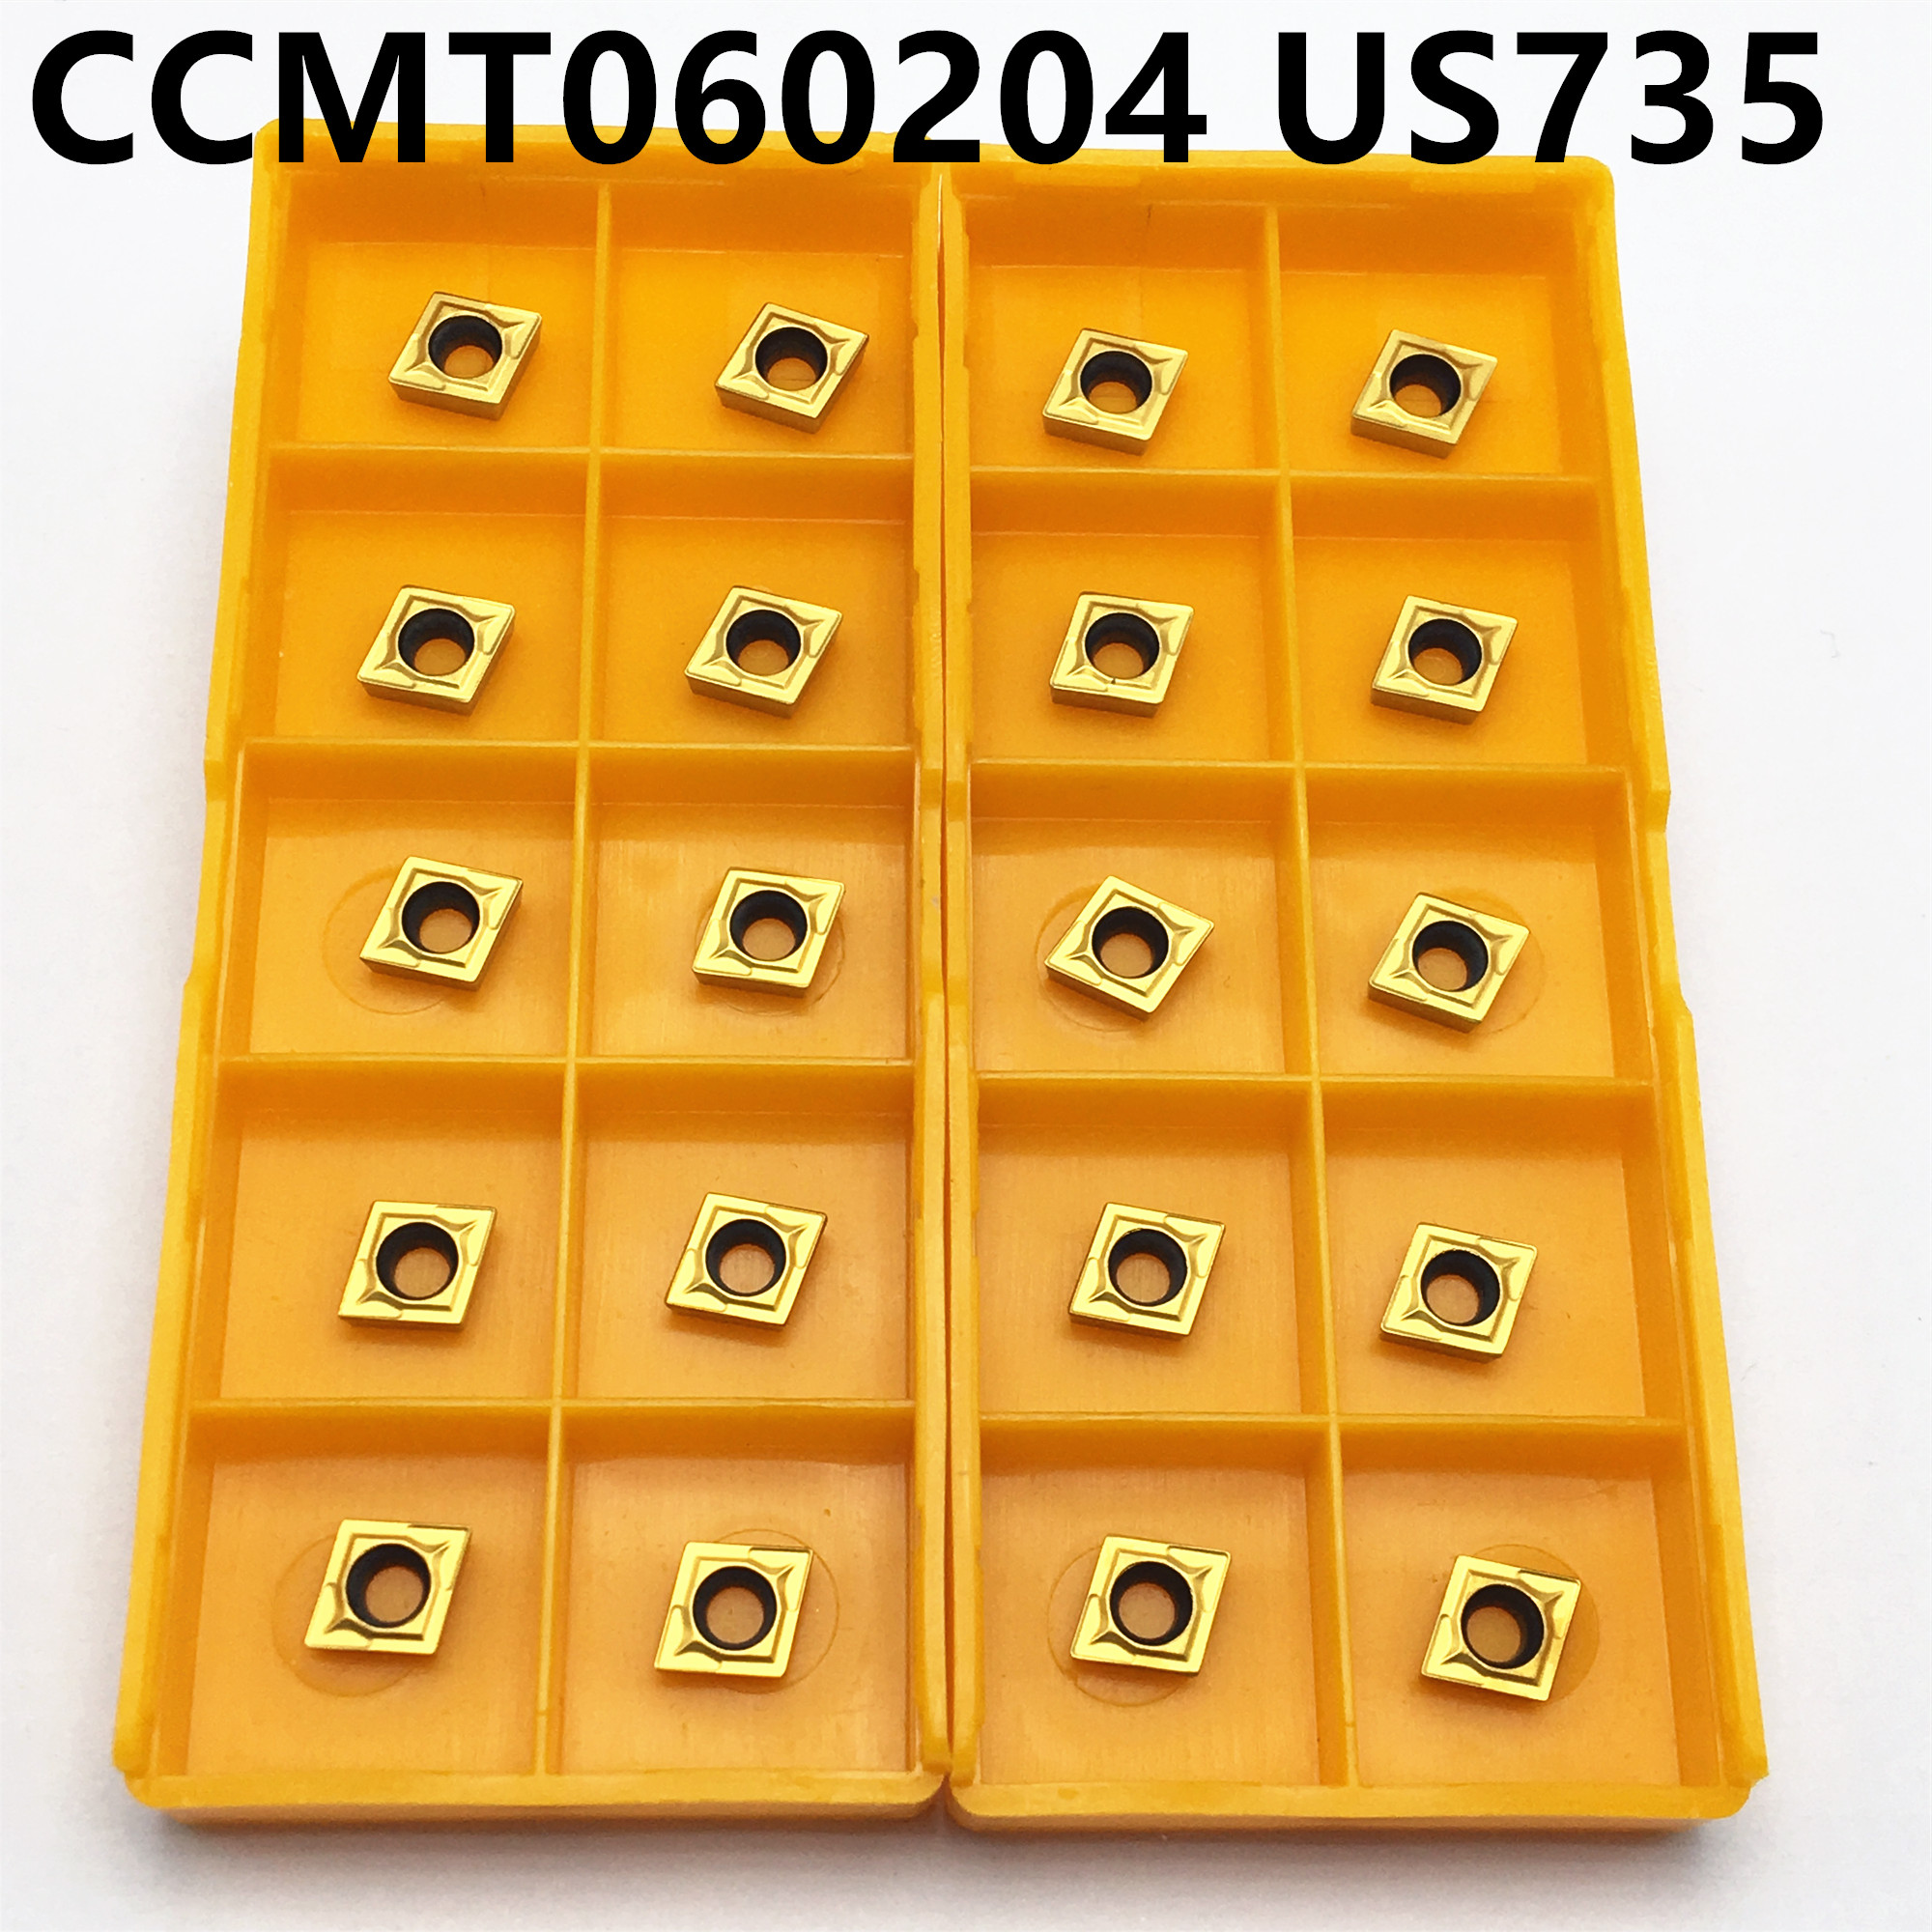 10PCS CCMT060204 US735 Carbide Inserts Internal Round Car Cutter CCMT 060204 End Milling Tool CNC